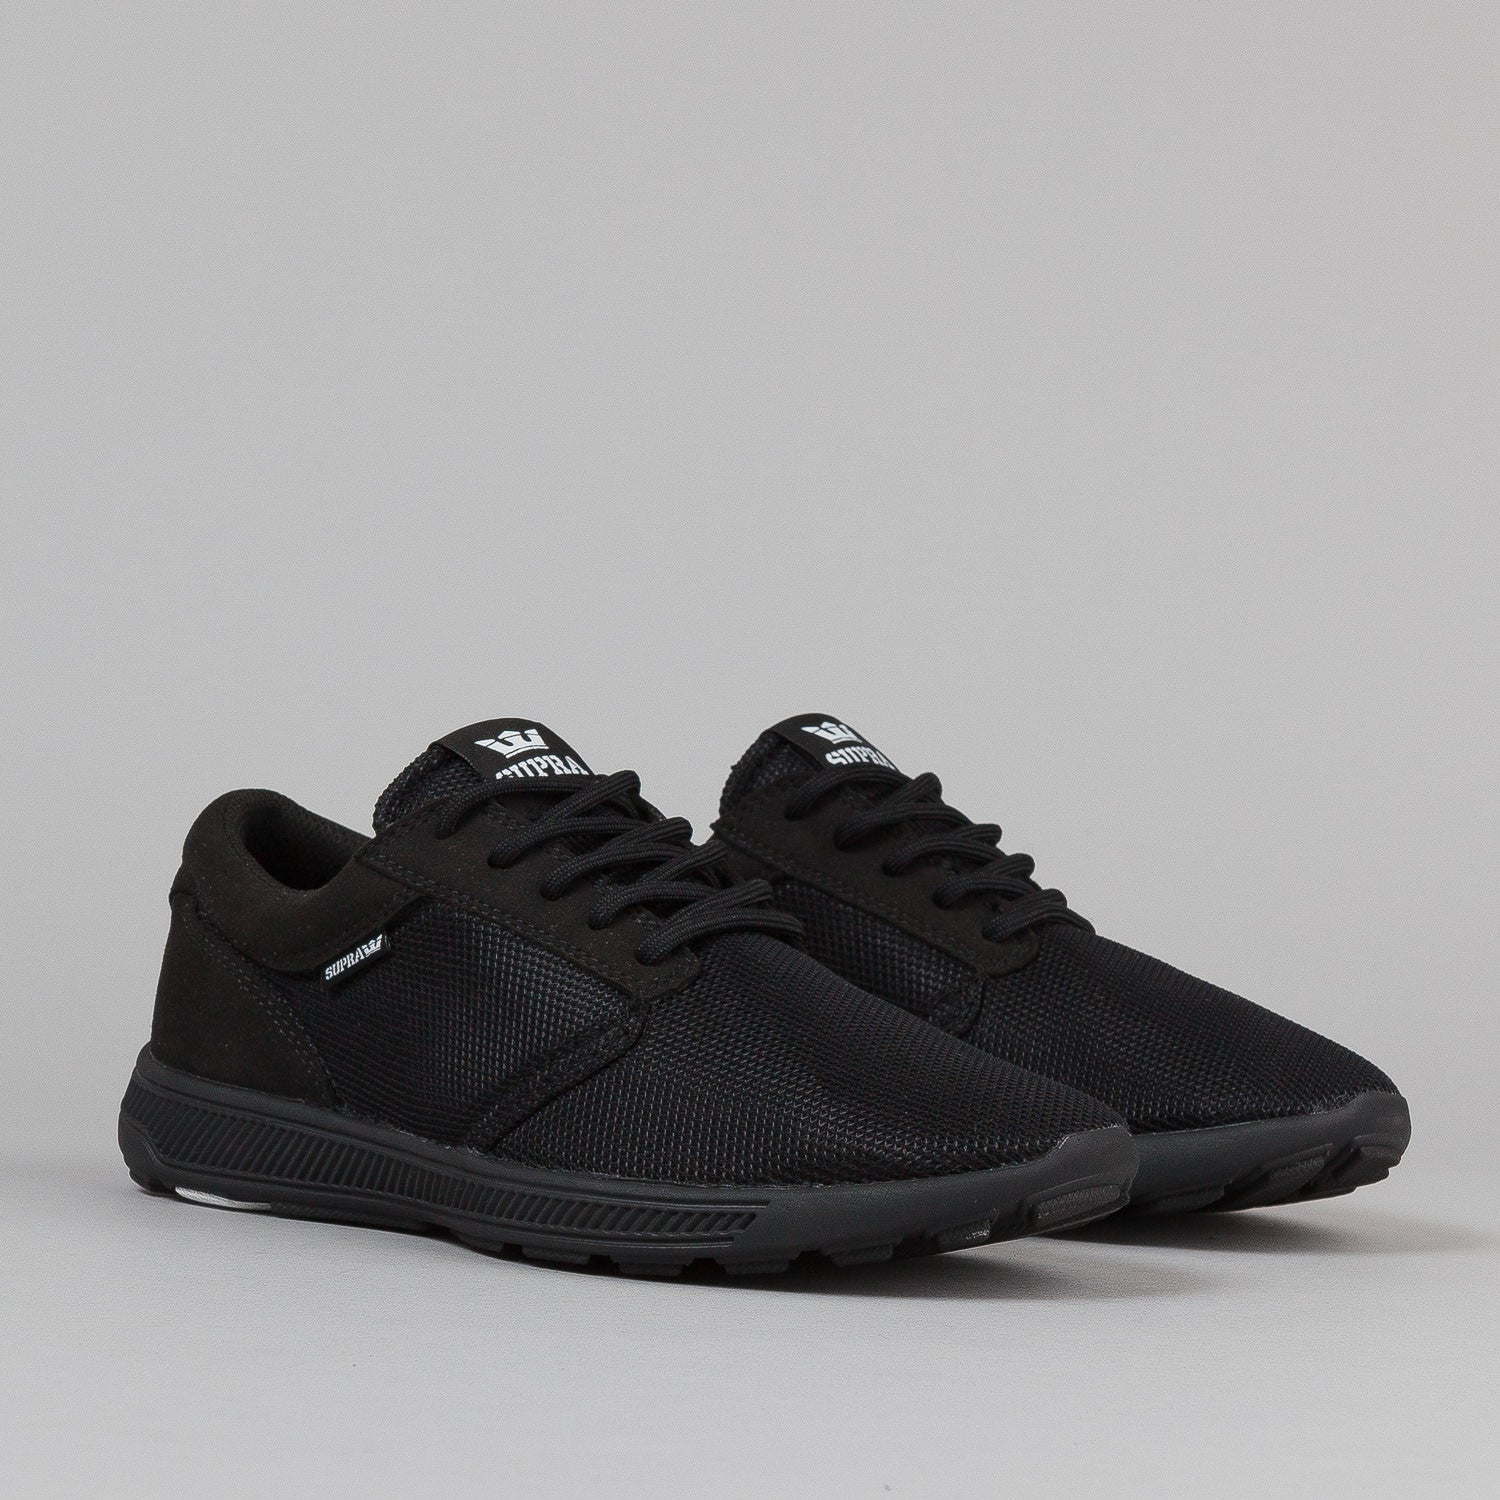 Supra Hammer Run Shoes - Black / Black / Black